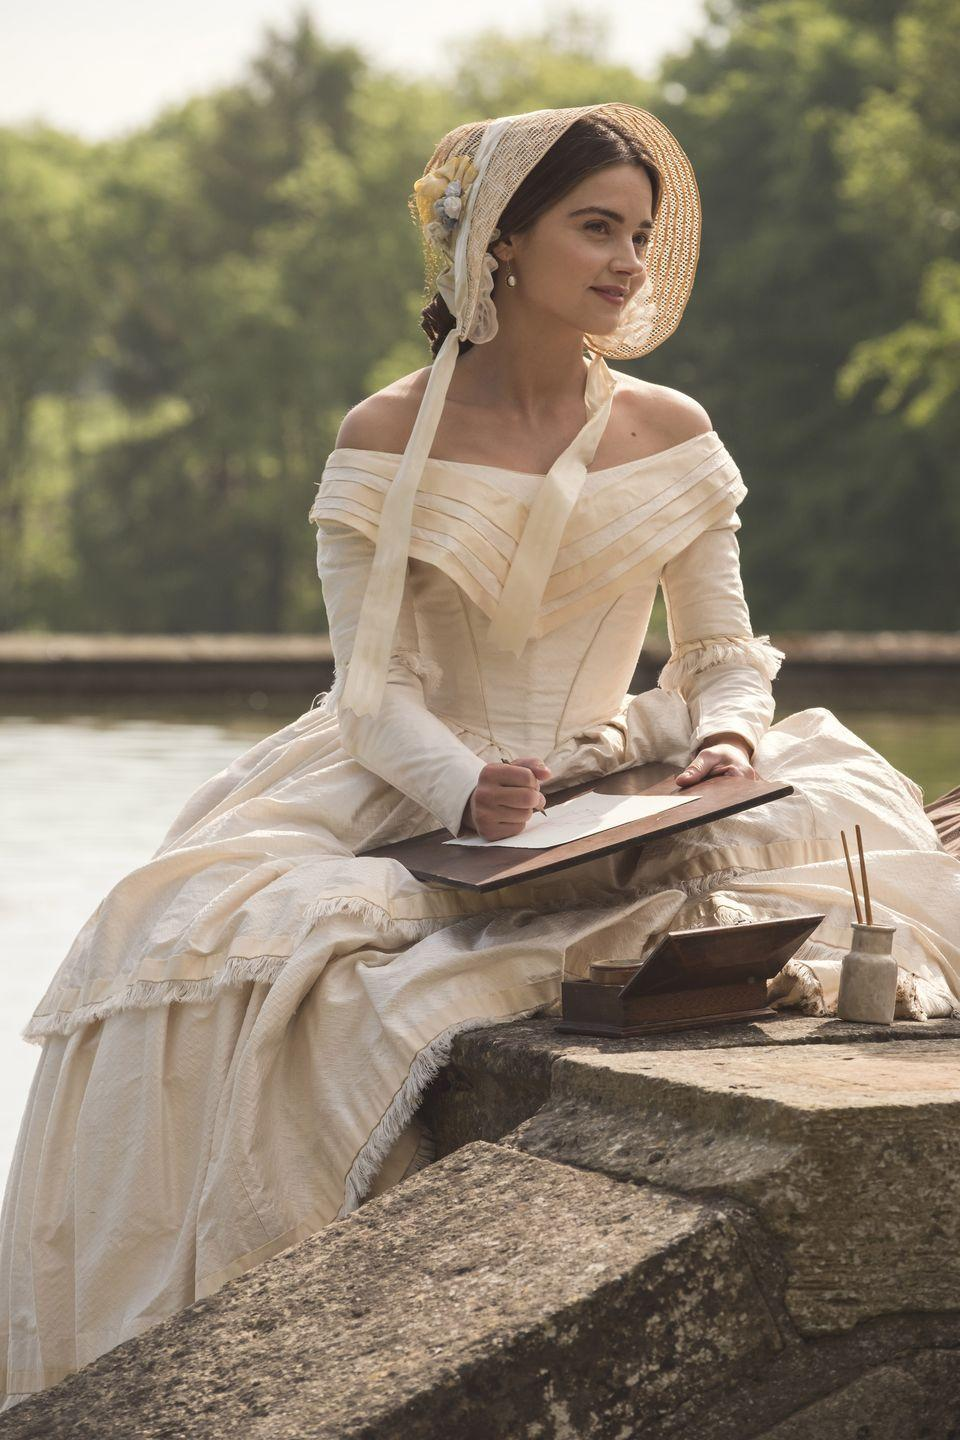 """<p>Laoghaire MacKenzie is one of the most-hated characters in the <em>Outlander</em> canon, so it will come as a shock to see actress Nell Hudson playing Queen Victoria's dutiful maid Mrs. Skerrett in <em><a href=""""https://www.townandcountrymag.com/leisure/arts-and-culture/a26518700/victoria-season-4/"""" rel=""""nofollow noopener"""" target=""""_blank"""" data-ylk=""""slk:Victoria"""" class=""""link rapid-noclick-resp"""">Victoria</a></em>. The Masterpiece PBS series about the British monarch's early reign is worth a watch for Hudson's performance, for the <a href=""""https://www.townandcountrymag.com/society/tradition/a26452844/how-did-prince-albert-die/"""" rel=""""nofollow noopener"""" target=""""_blank"""" data-ylk=""""slk:ill-fated romance between Victoria and her Albert"""" class=""""link rapid-noclick-resp"""">ill-fated romance between Victoria and her Albert</a>, and for the gorgeous costumes. </p><p><a class=""""link rapid-noclick-resp"""" href=""""https://www.amazon.com/Victoria-Season-3/dp/B07L7QHN52?tag=syn-yahoo-20&ascsubtag=%5Bartid%7C10067.g.28484672%5Bsrc%7Cyahoo-us"""" rel=""""nofollow noopener"""" target=""""_blank"""" data-ylk=""""slk:Watch Now"""">Watch Now</a></p>"""